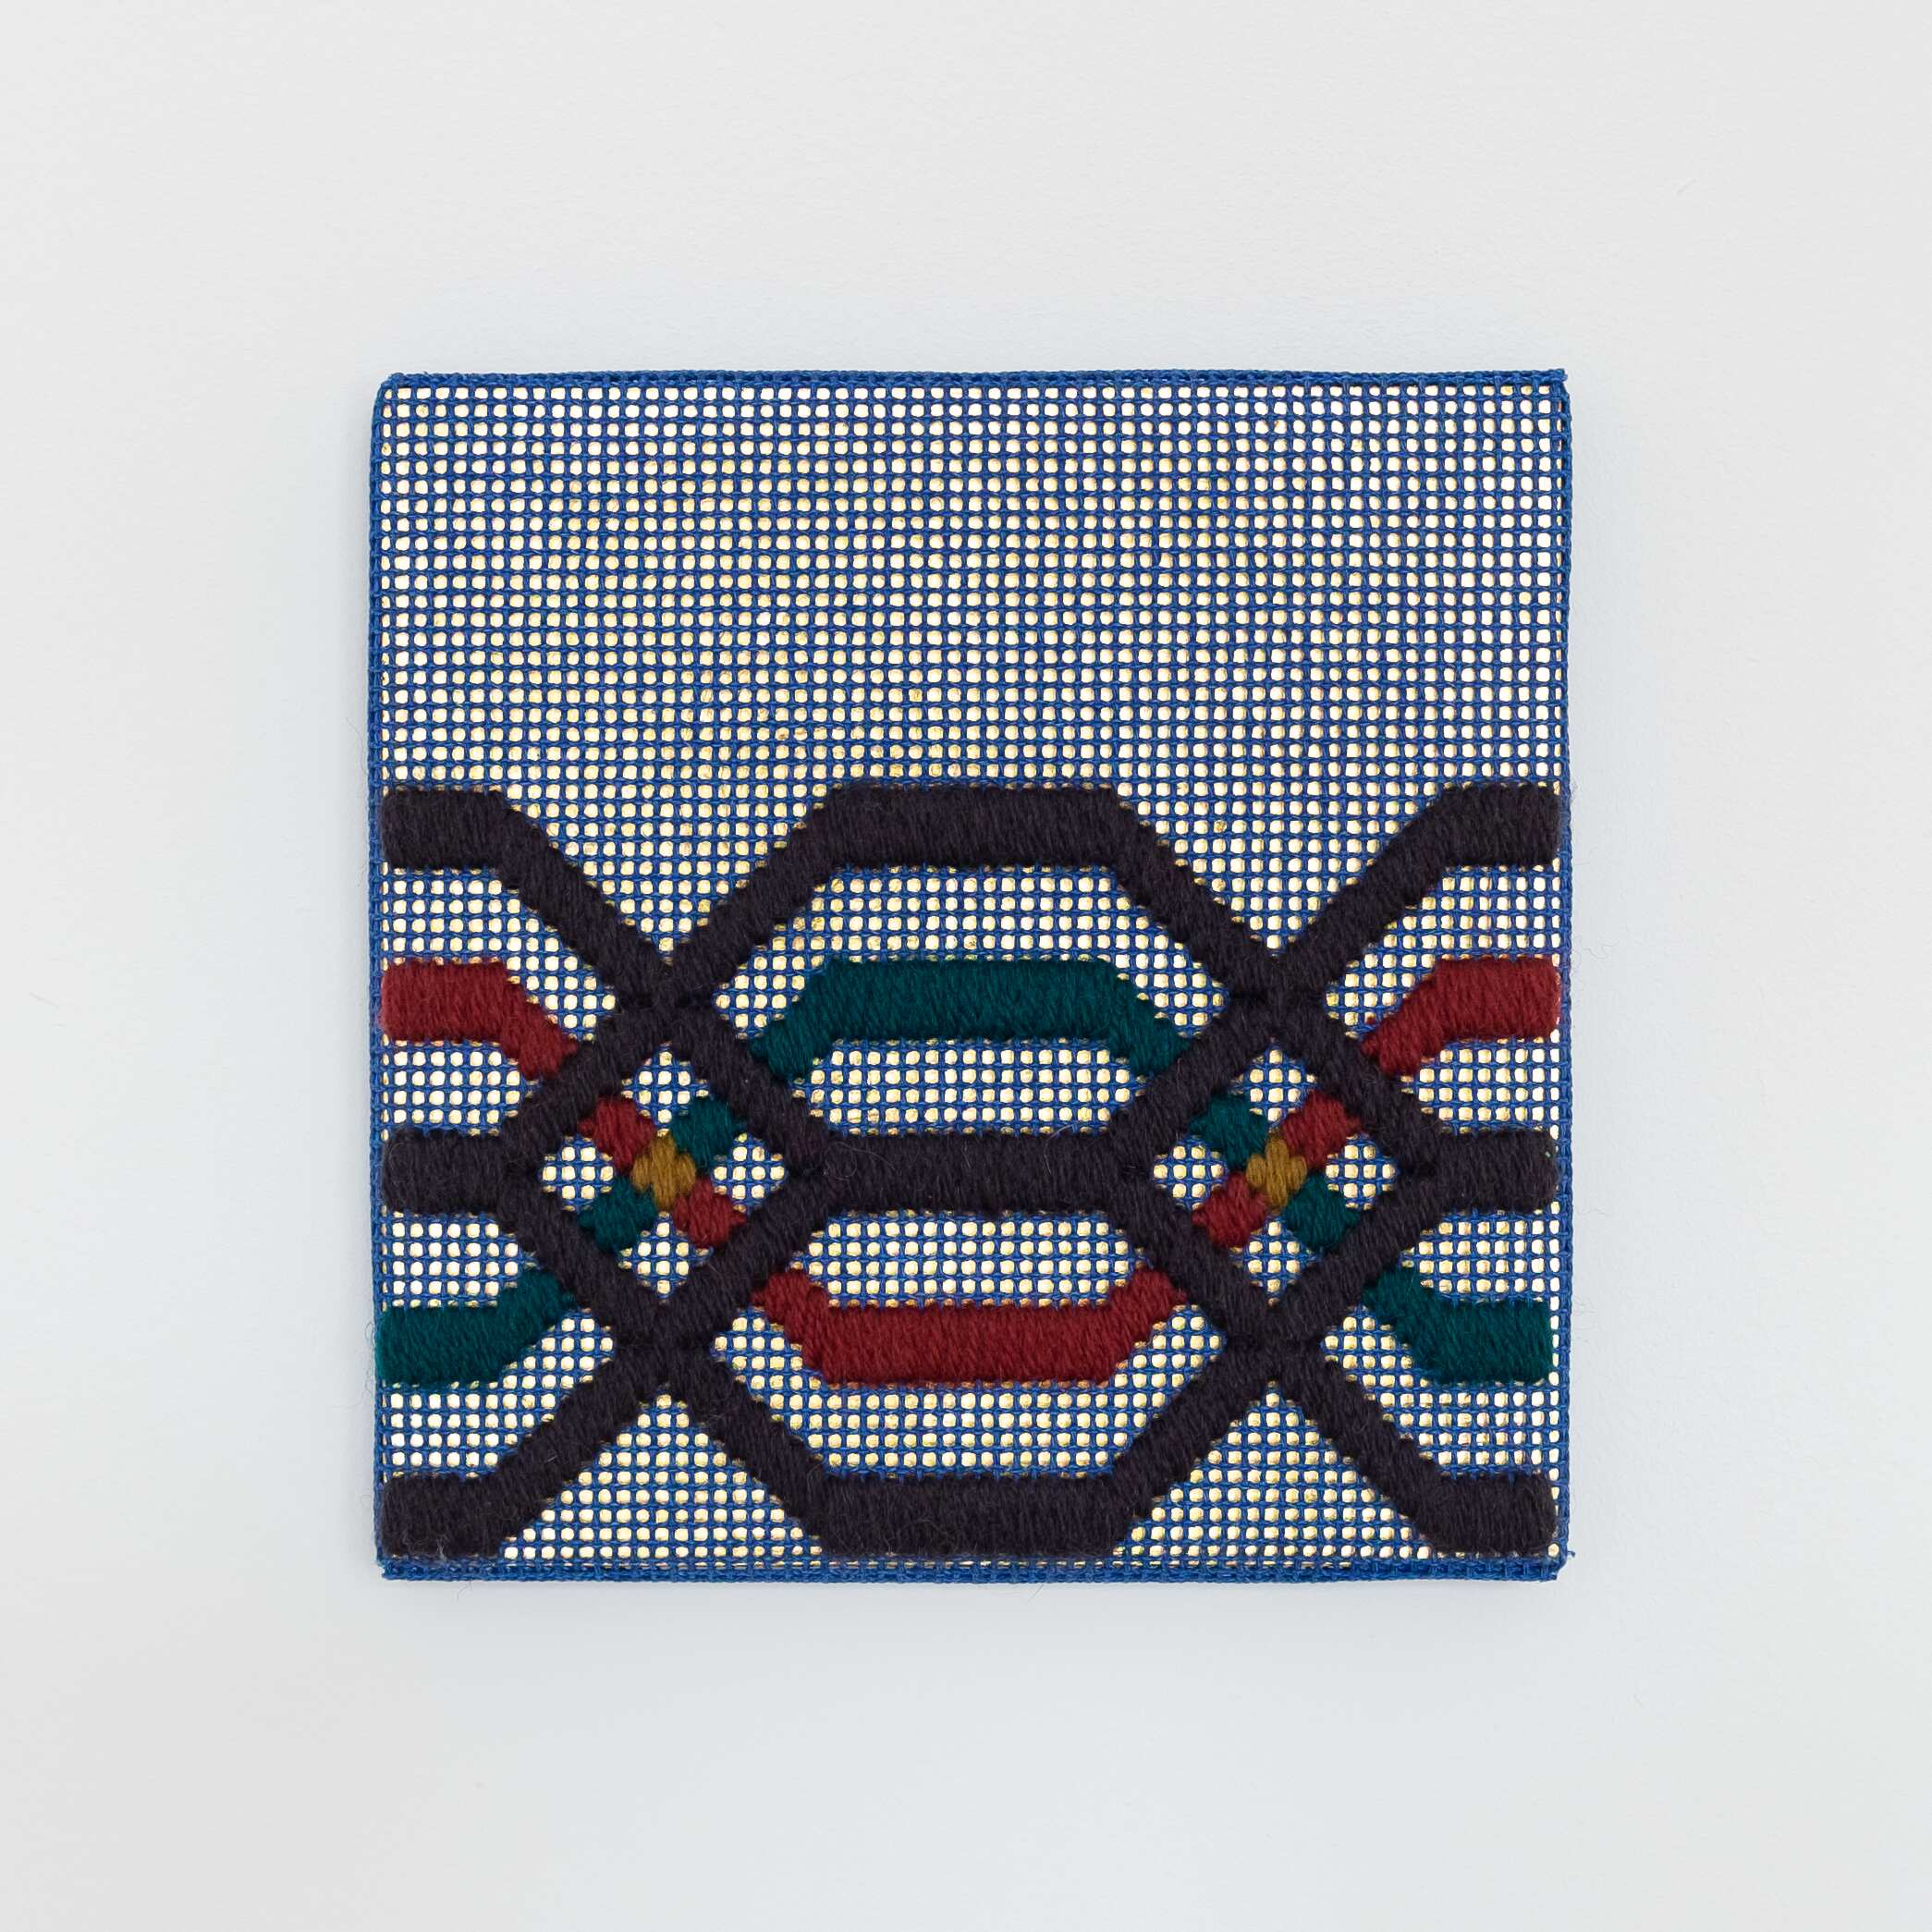 Border fragment [grey-teal-maroon on navy], Hand-embroidered wool thread and acrylic paint on canvas over gilded panel, 2021